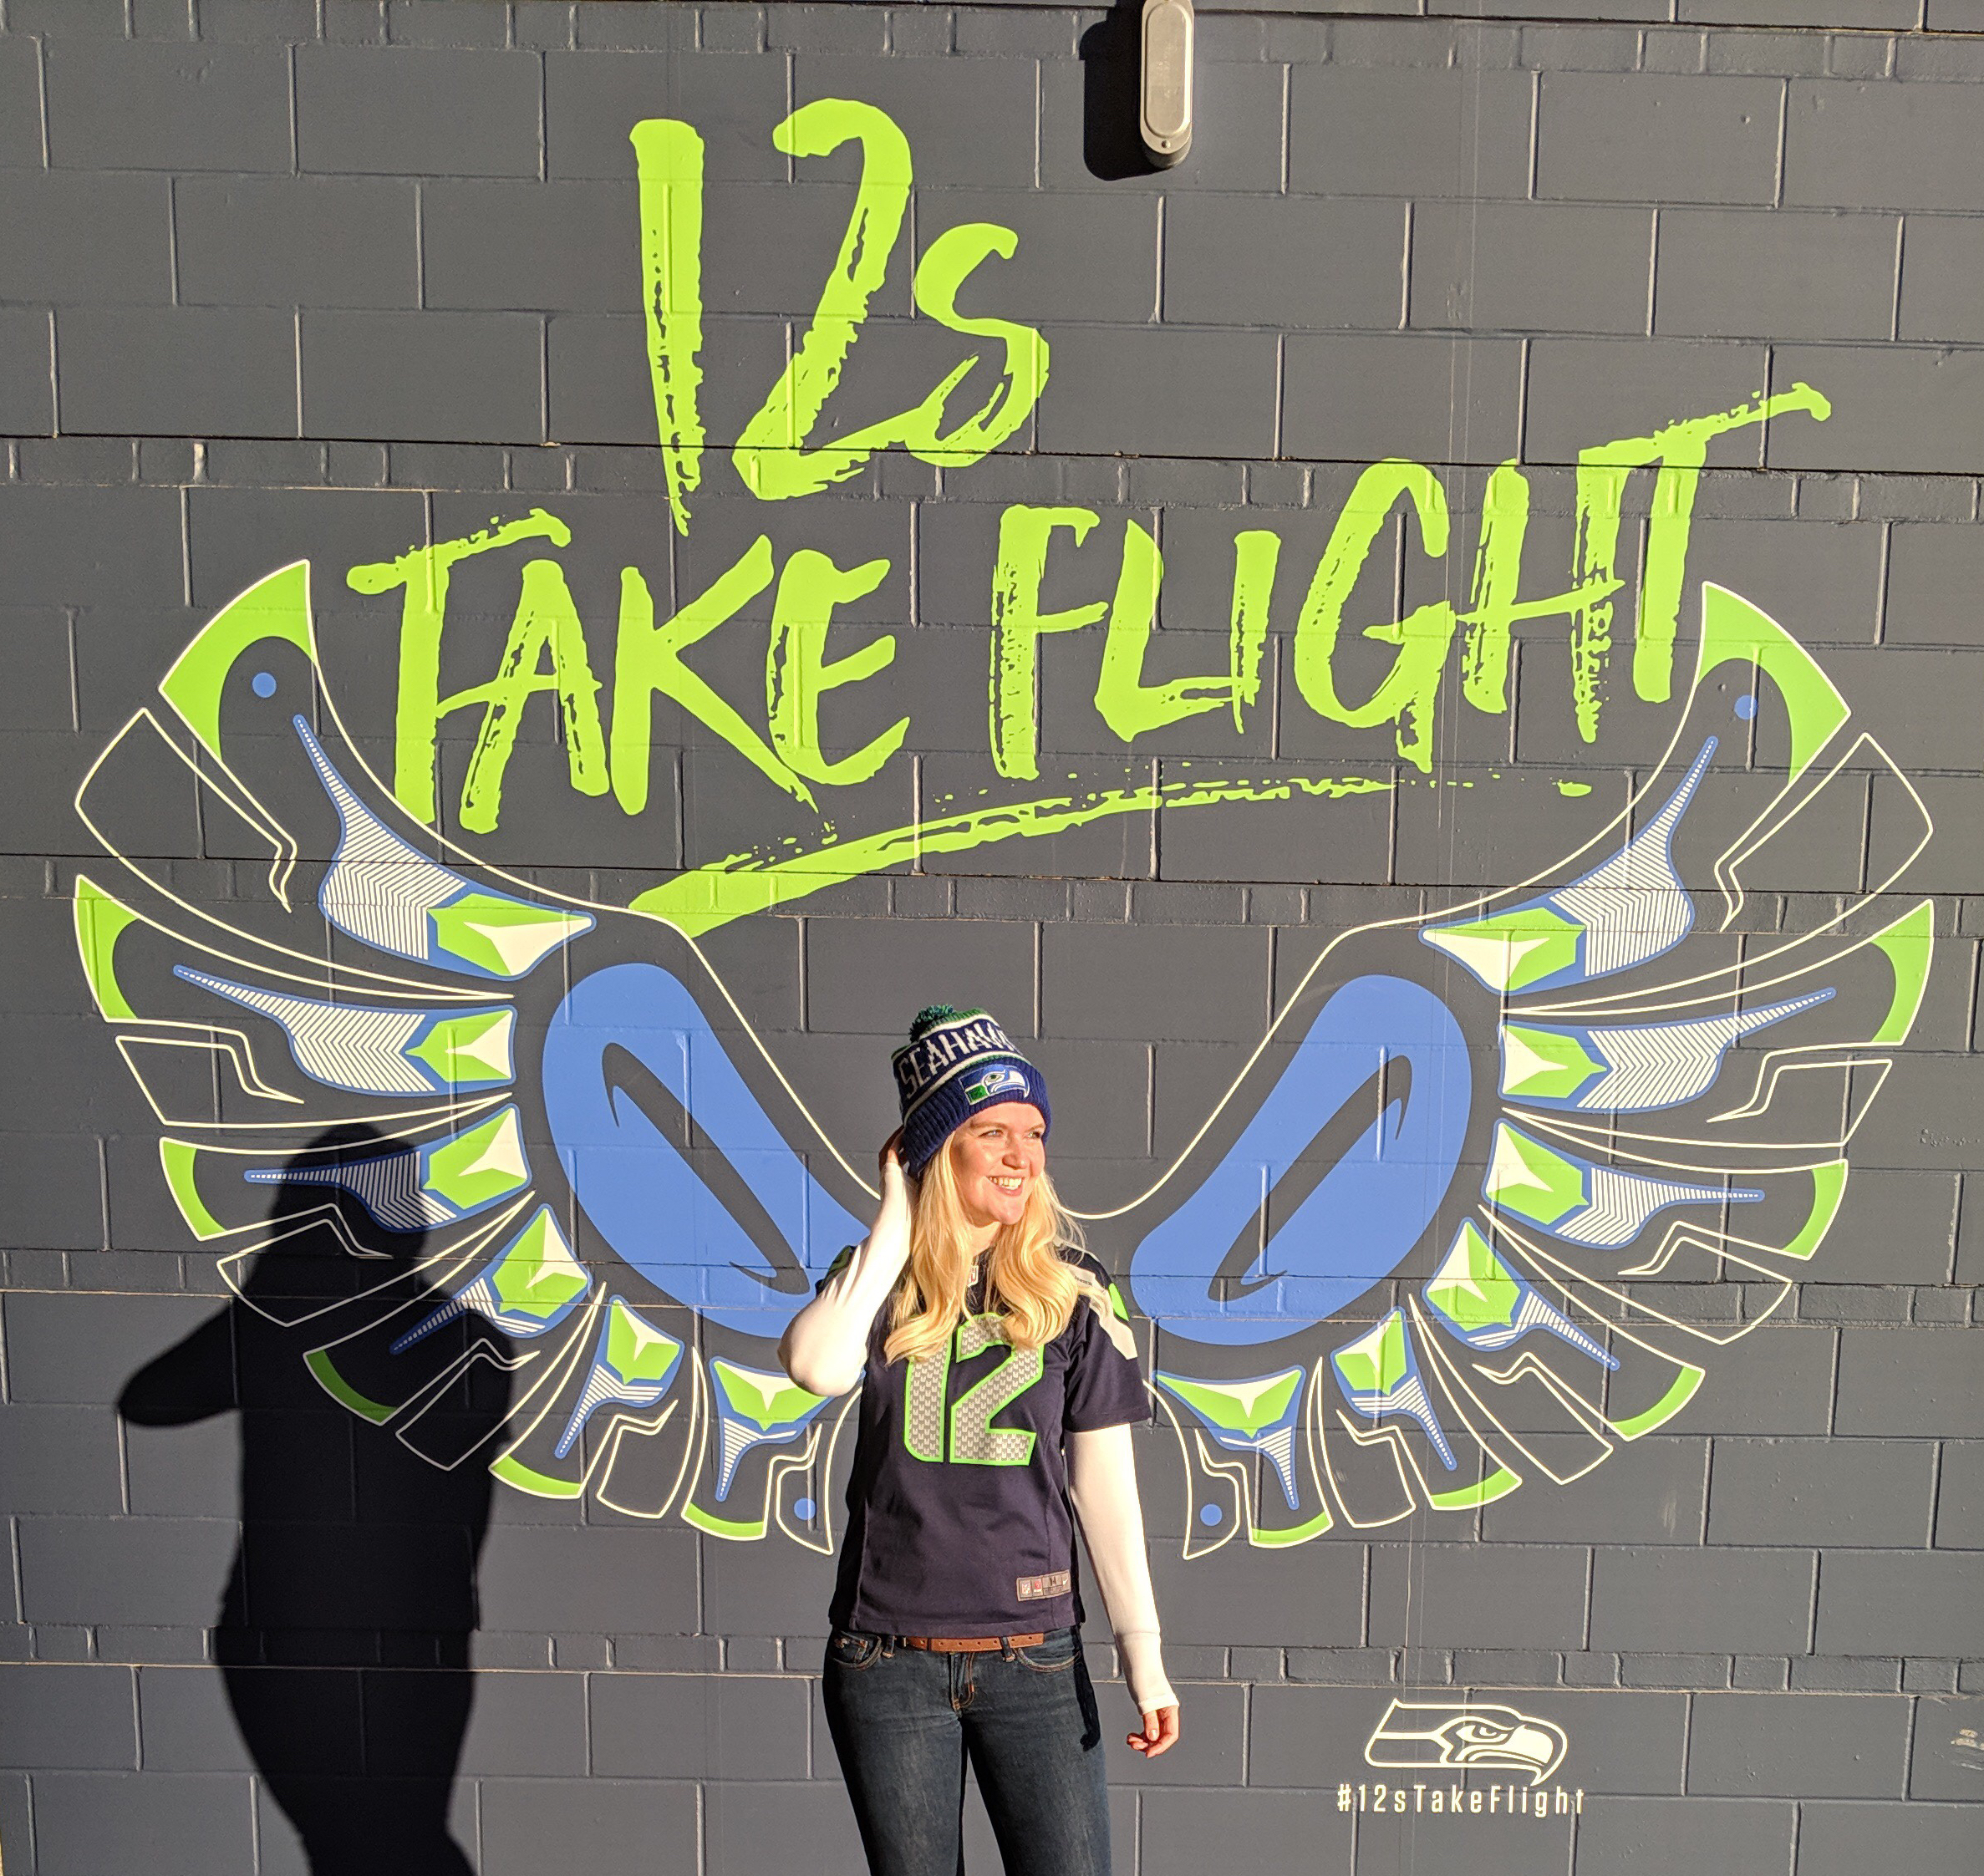 12s Take Flight